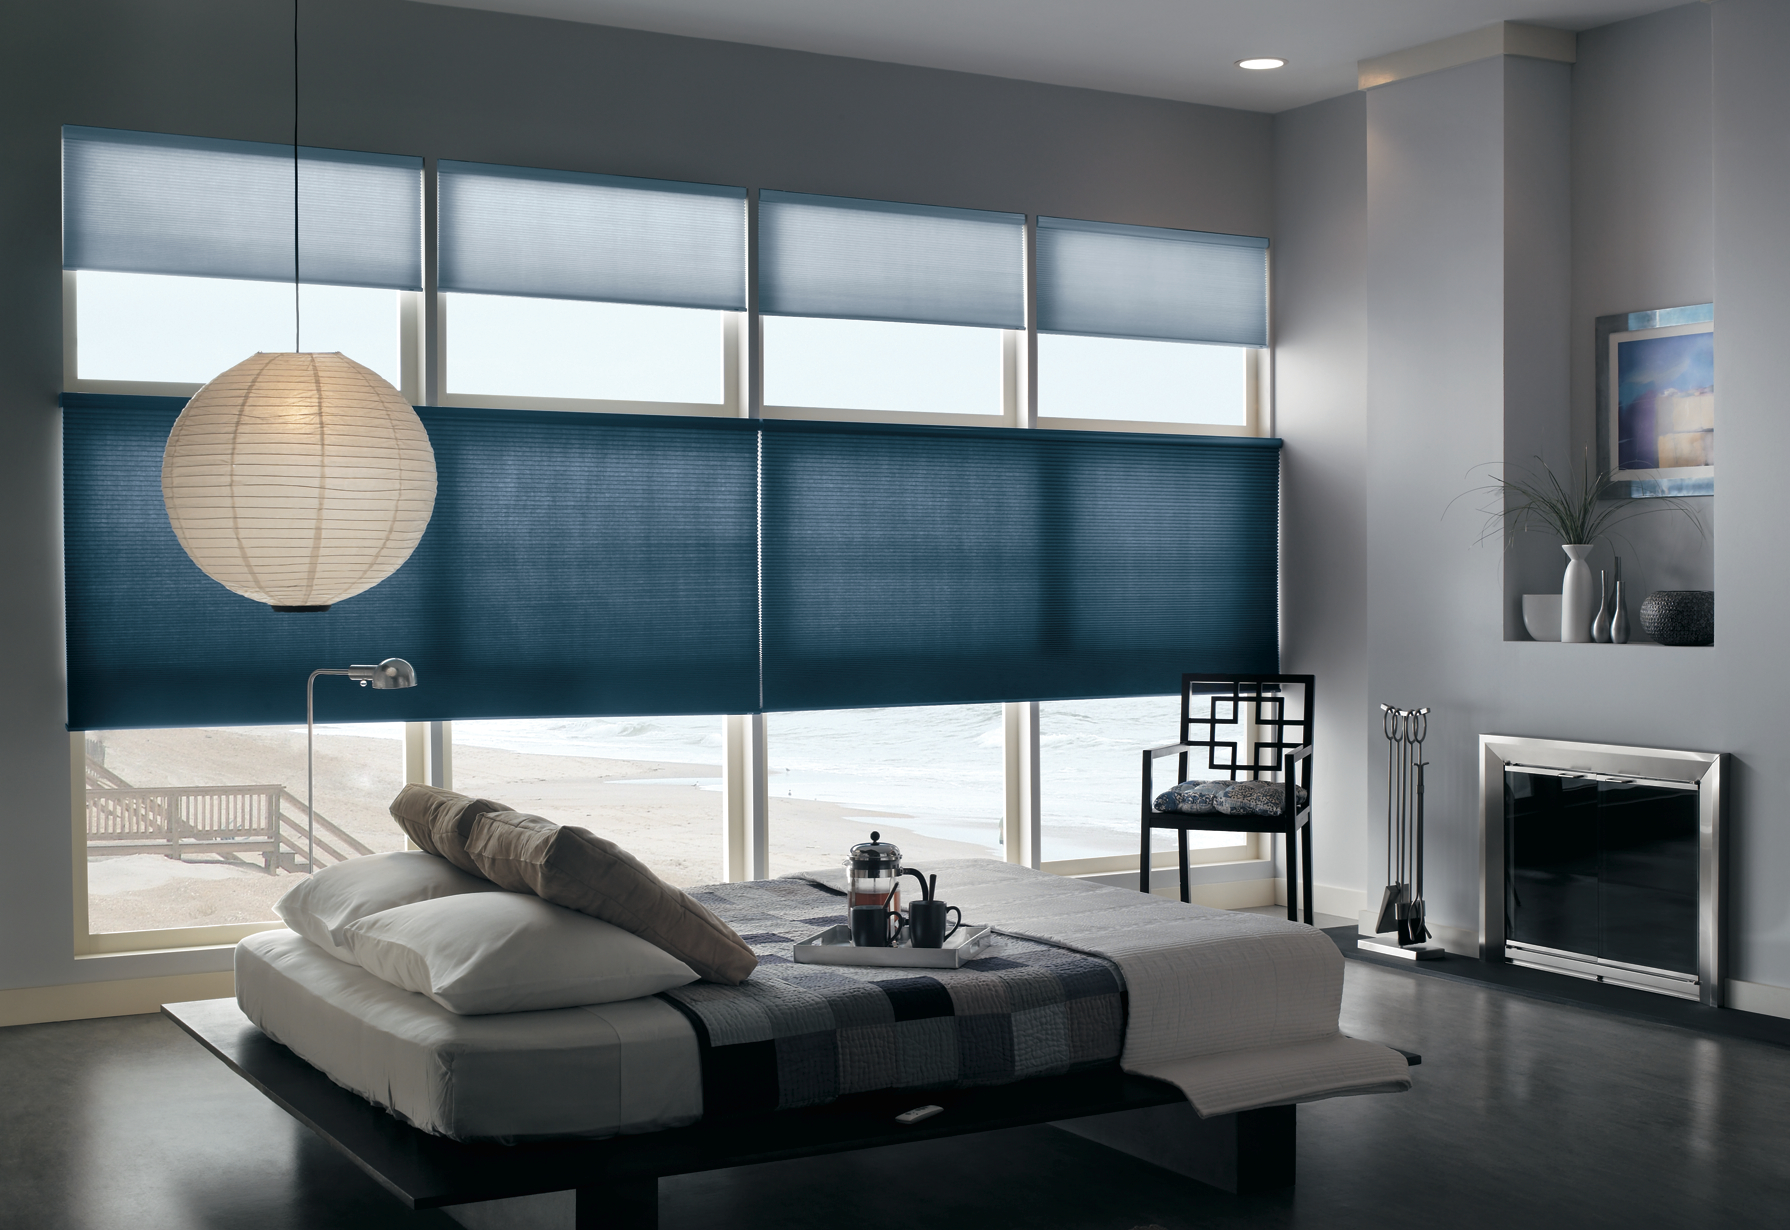 Cellular shades for your master bedroom from blindsgalore Window coverings for bedrooms